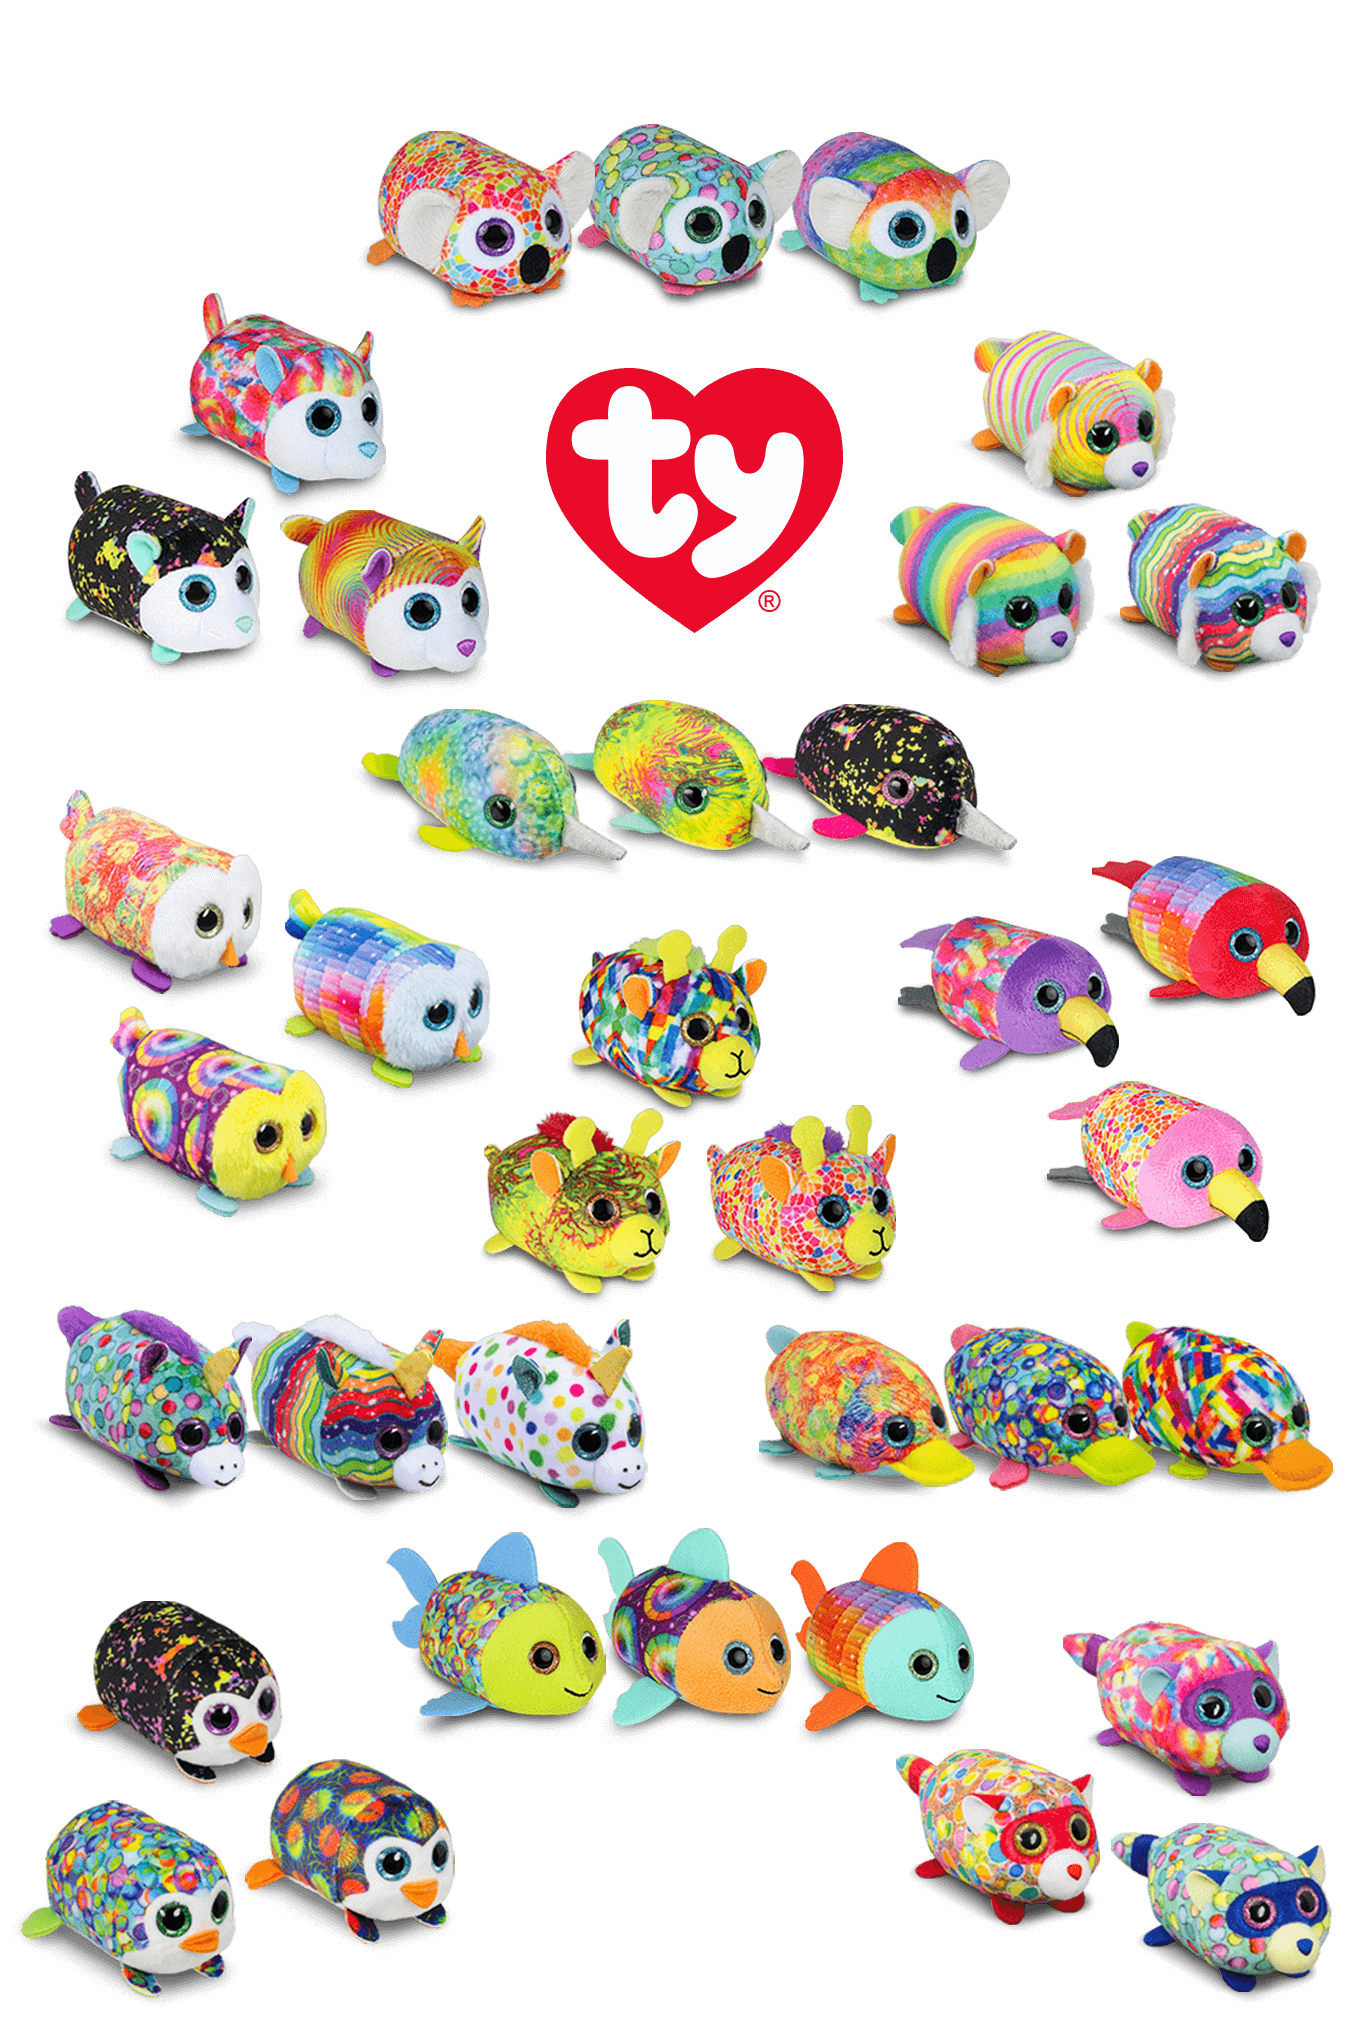 Teeny Tys Toys | Ty toys, Beanie boos, Homemade gifts